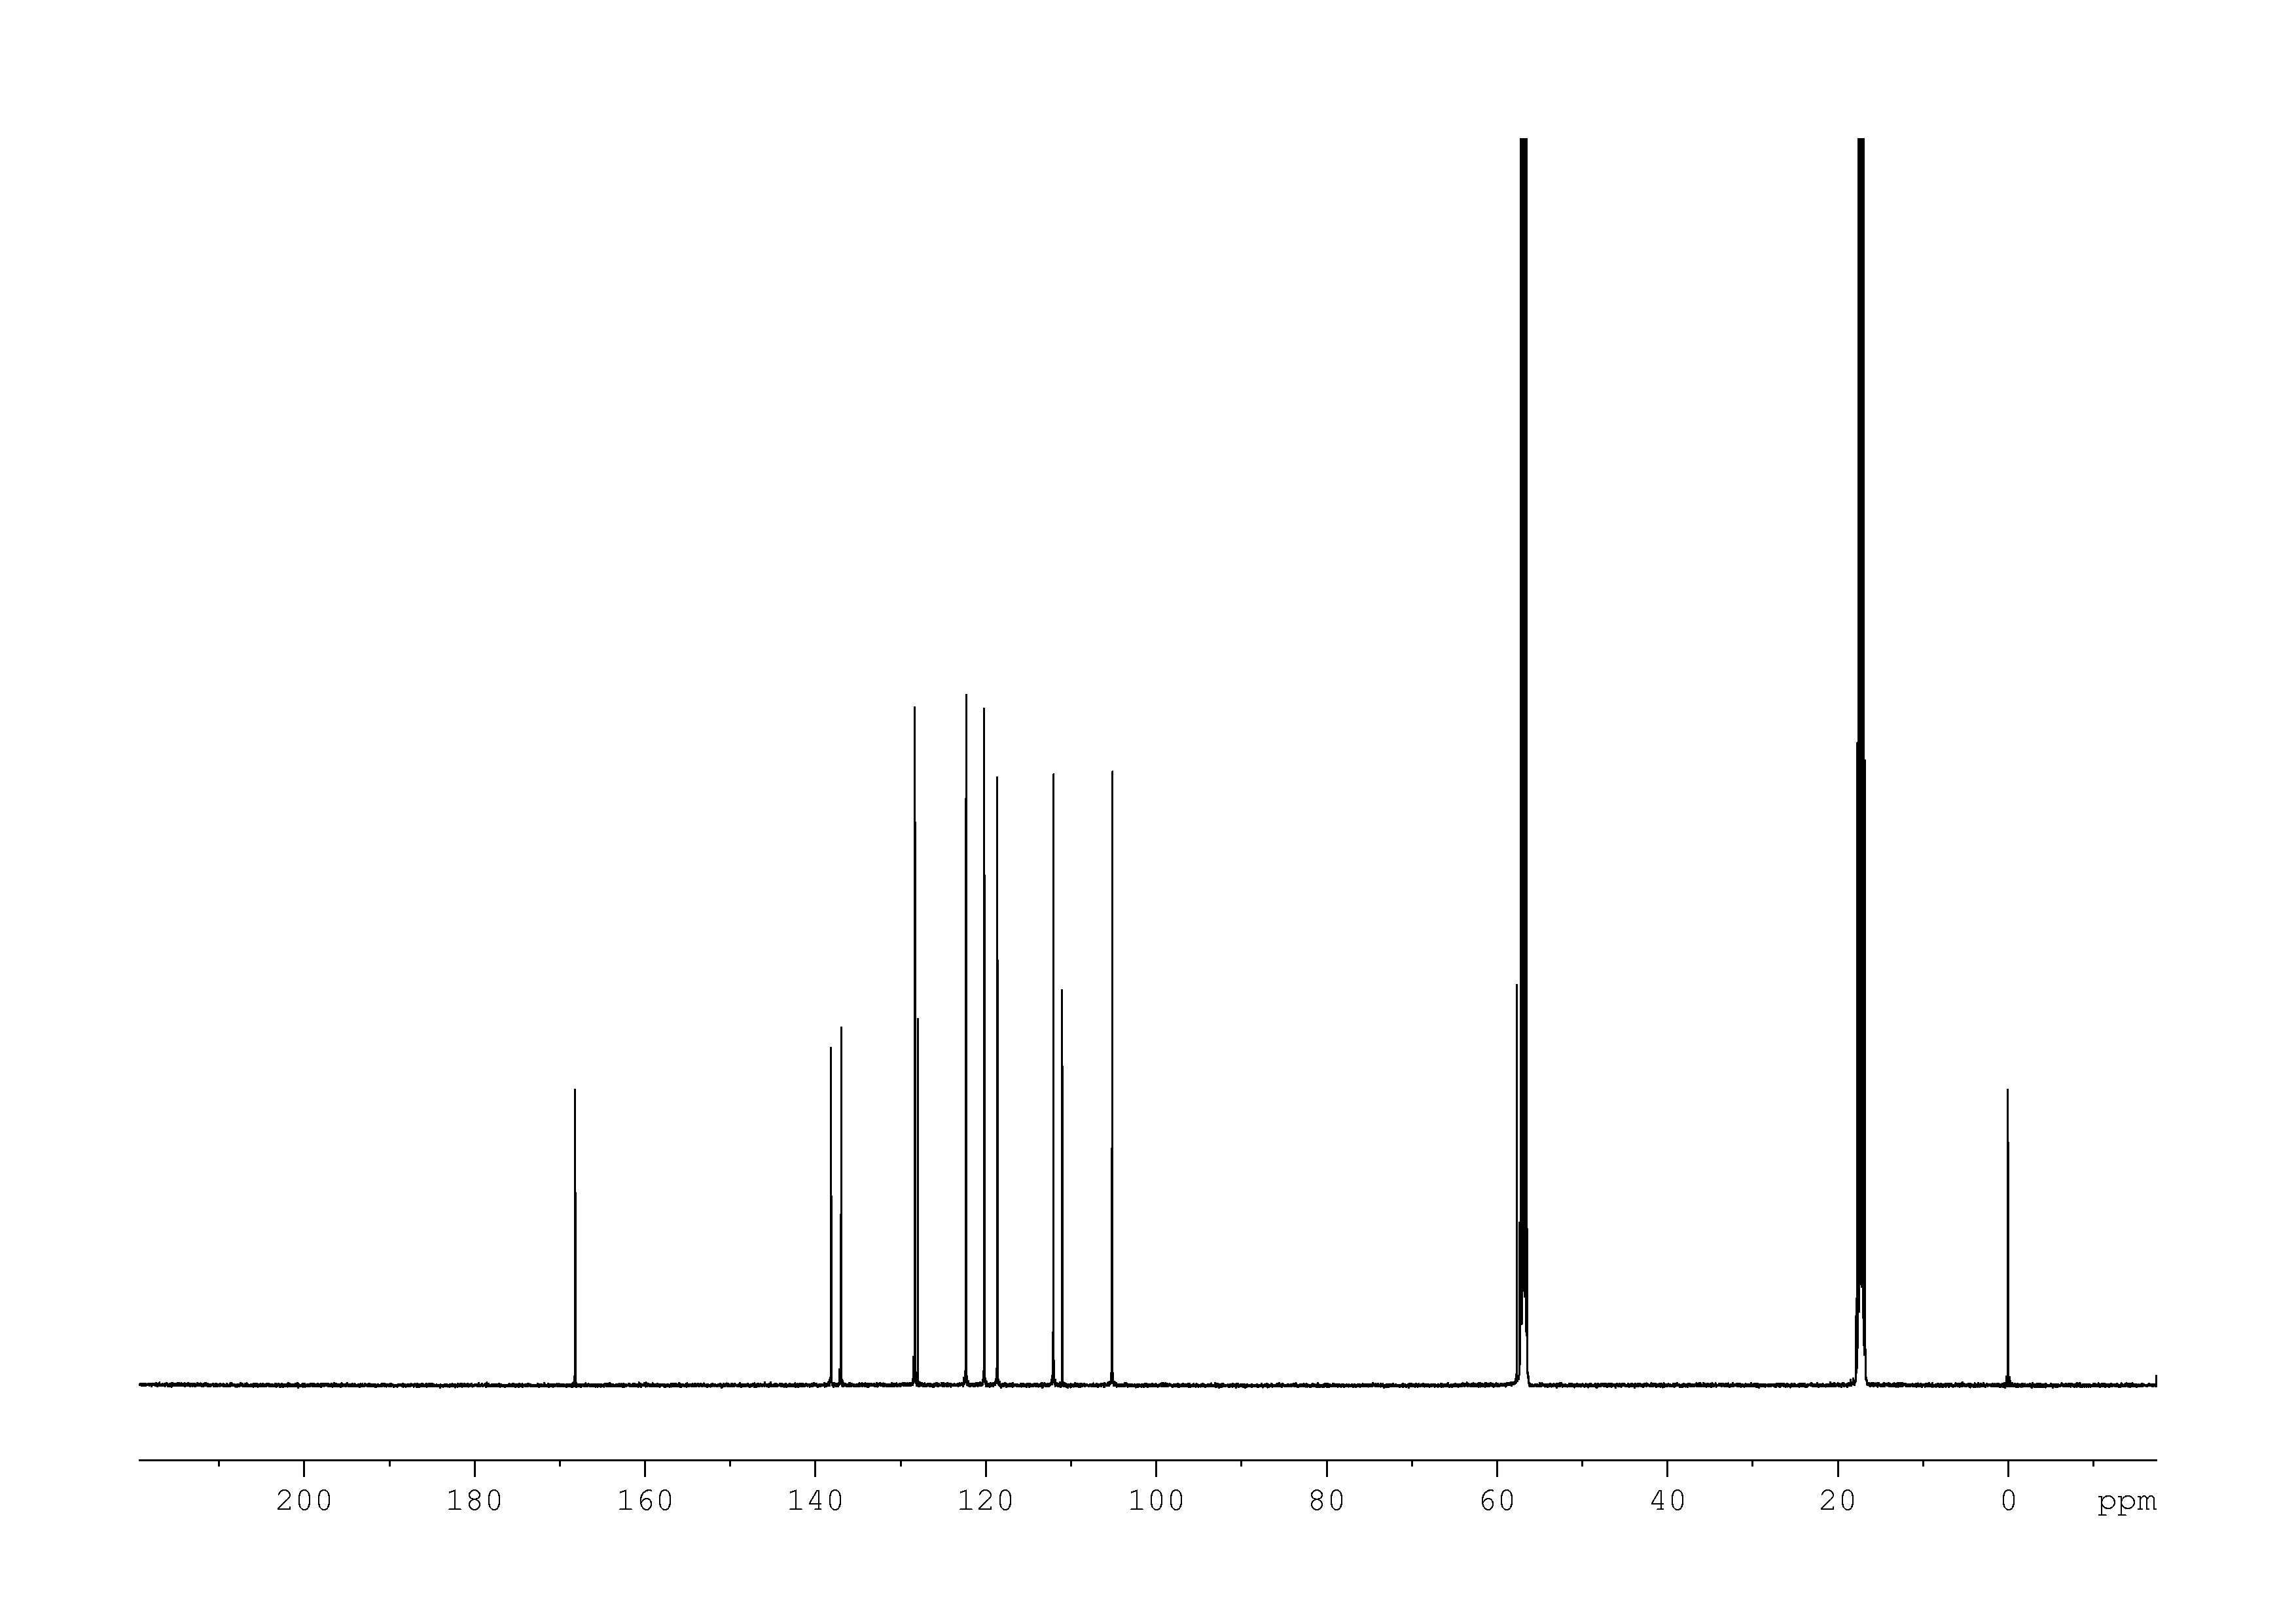 1D 13C, n/a spectrum for indole-3-pyruvic acid